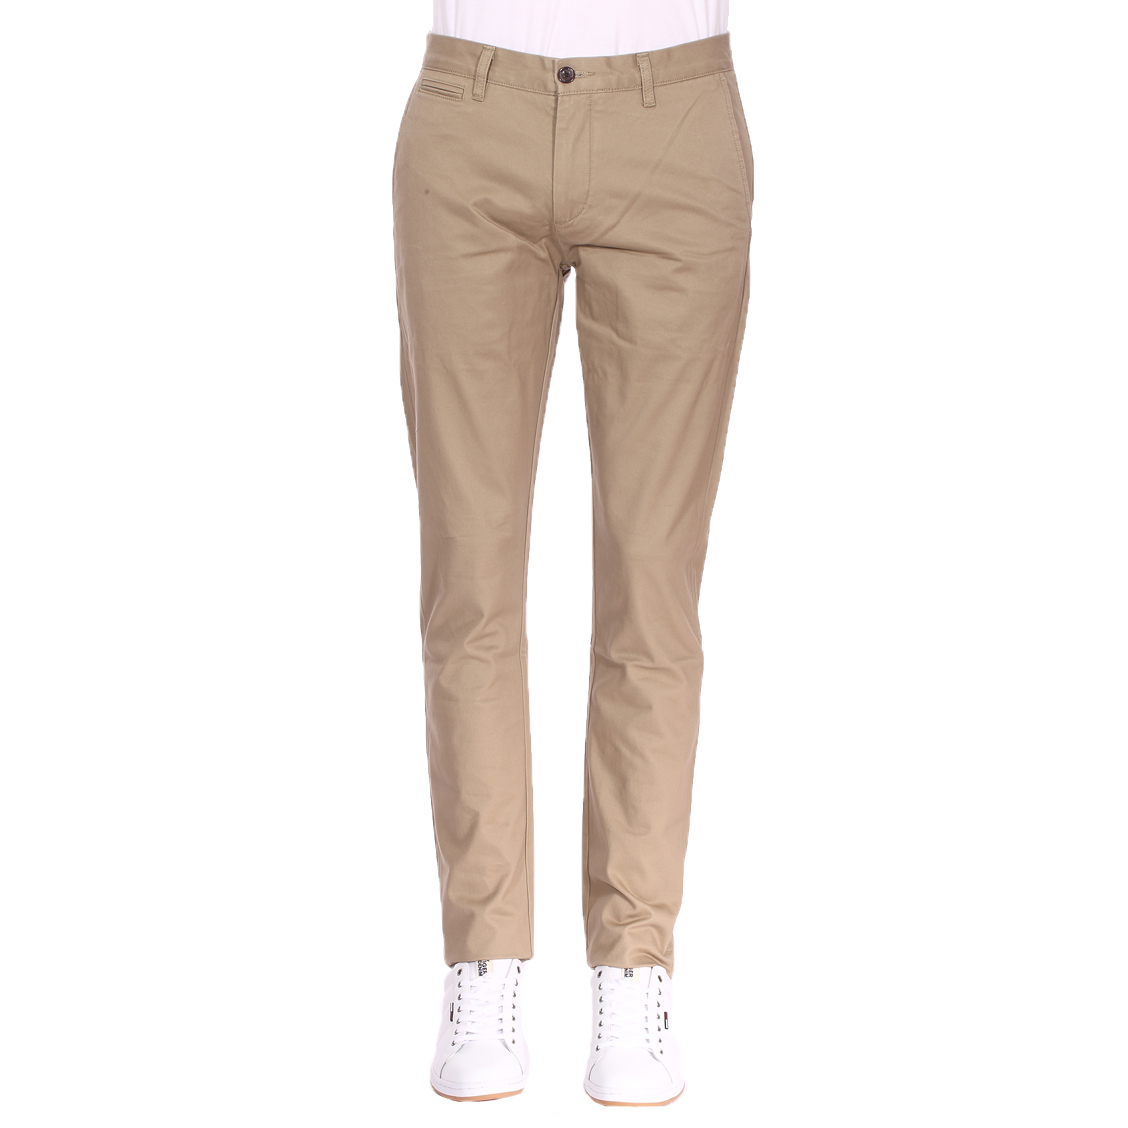 Pantalon  original slim tapered en sergé de coton stretch beige